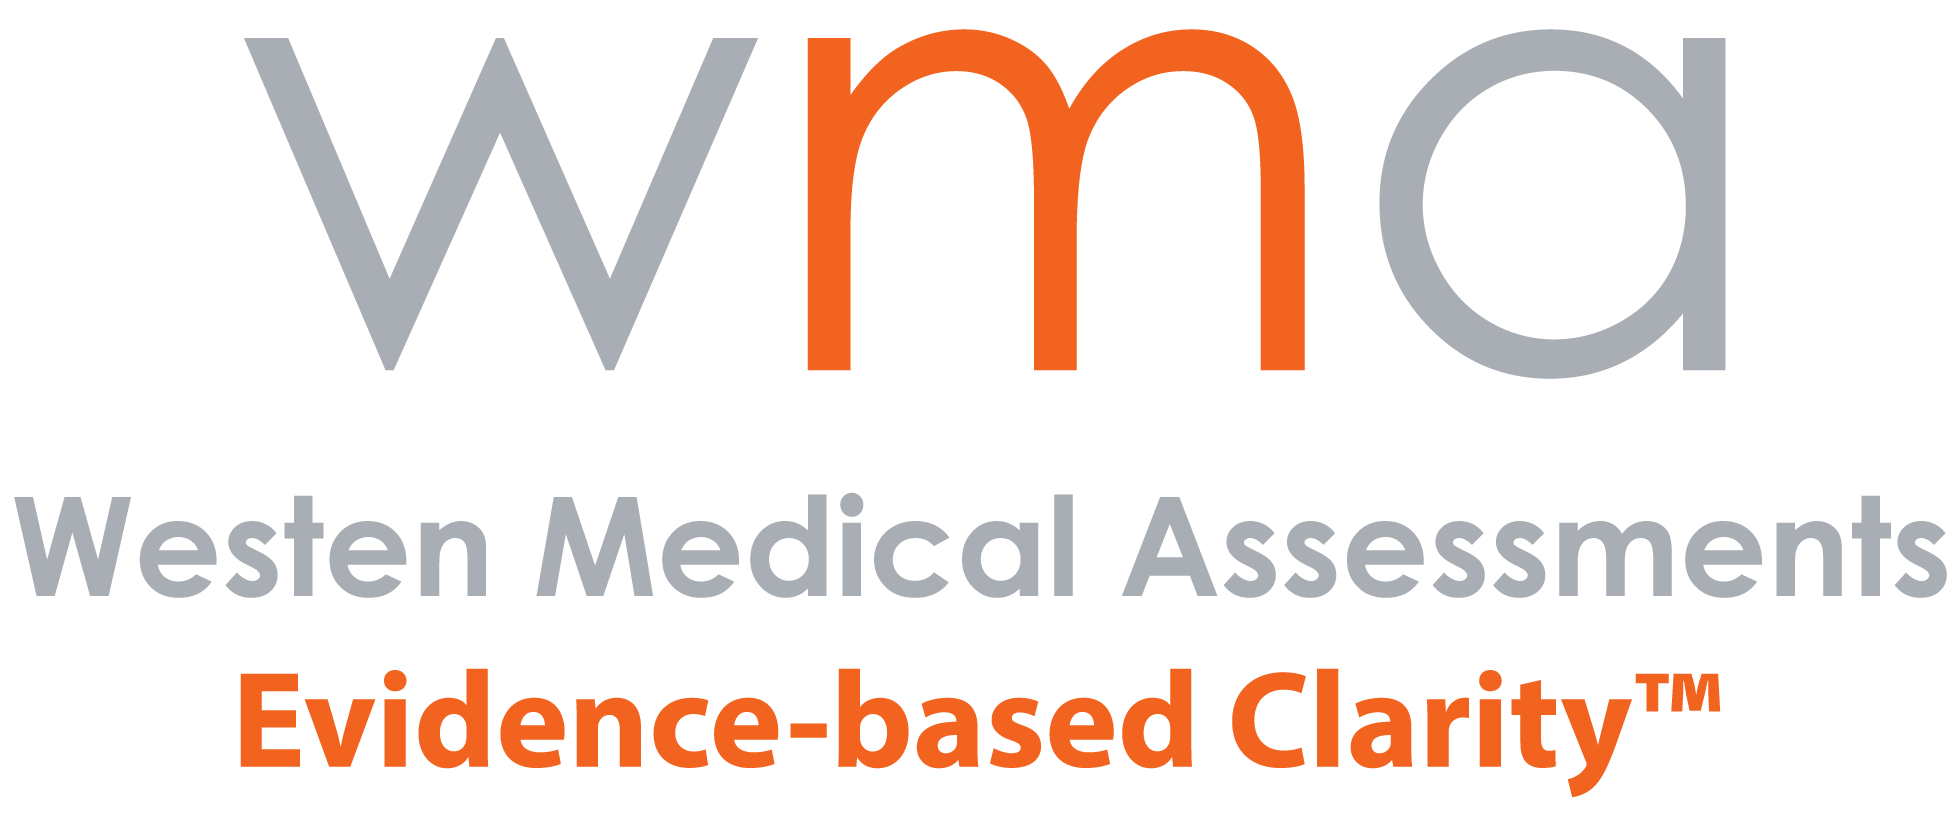 Western Medical Assessments